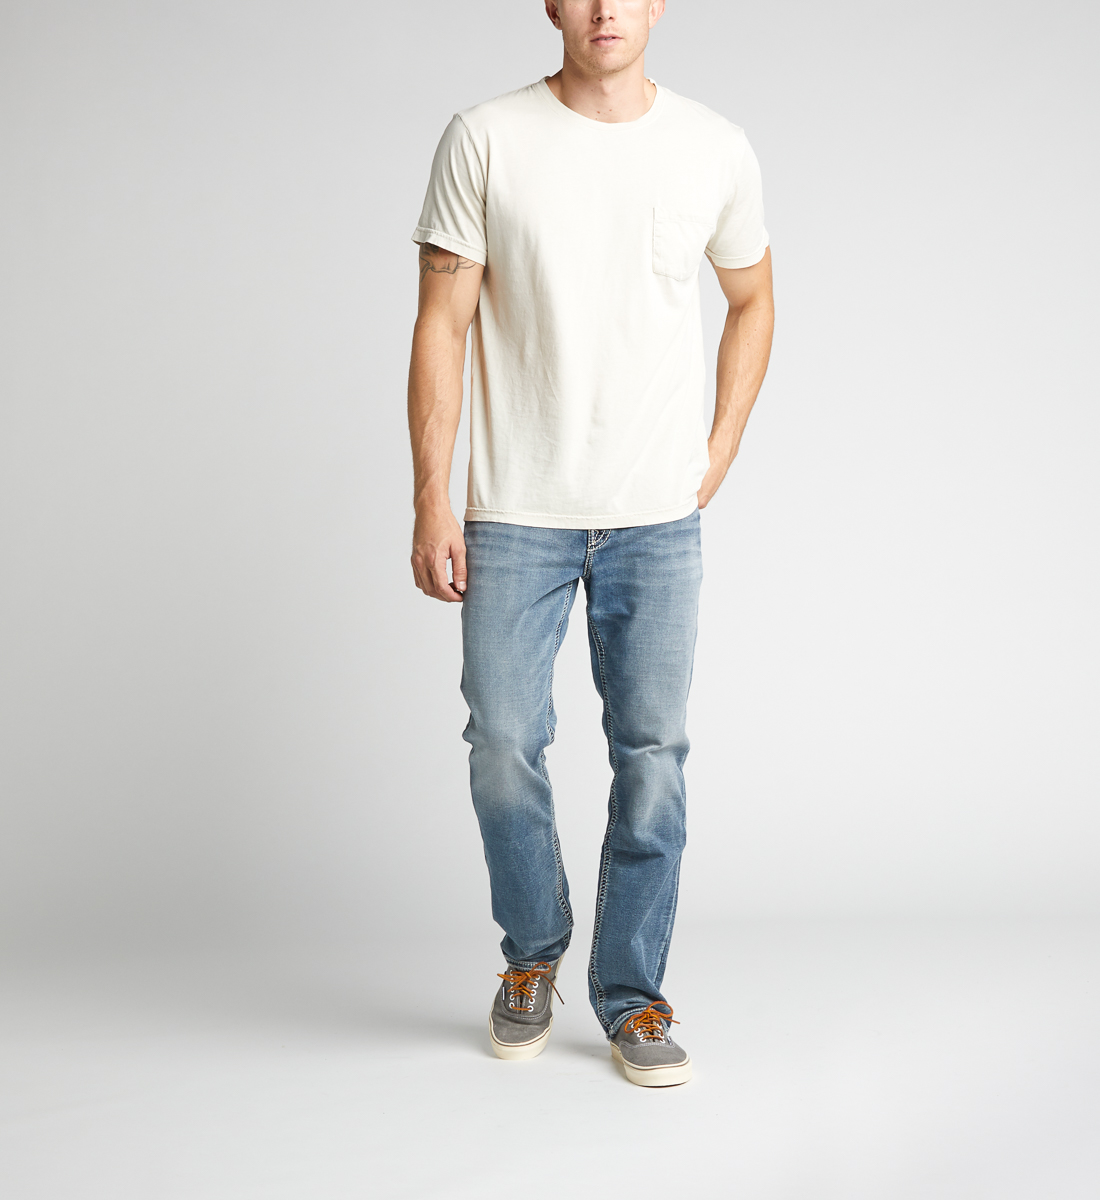 Silver Jeans Grayson Straight Mens Light Wash